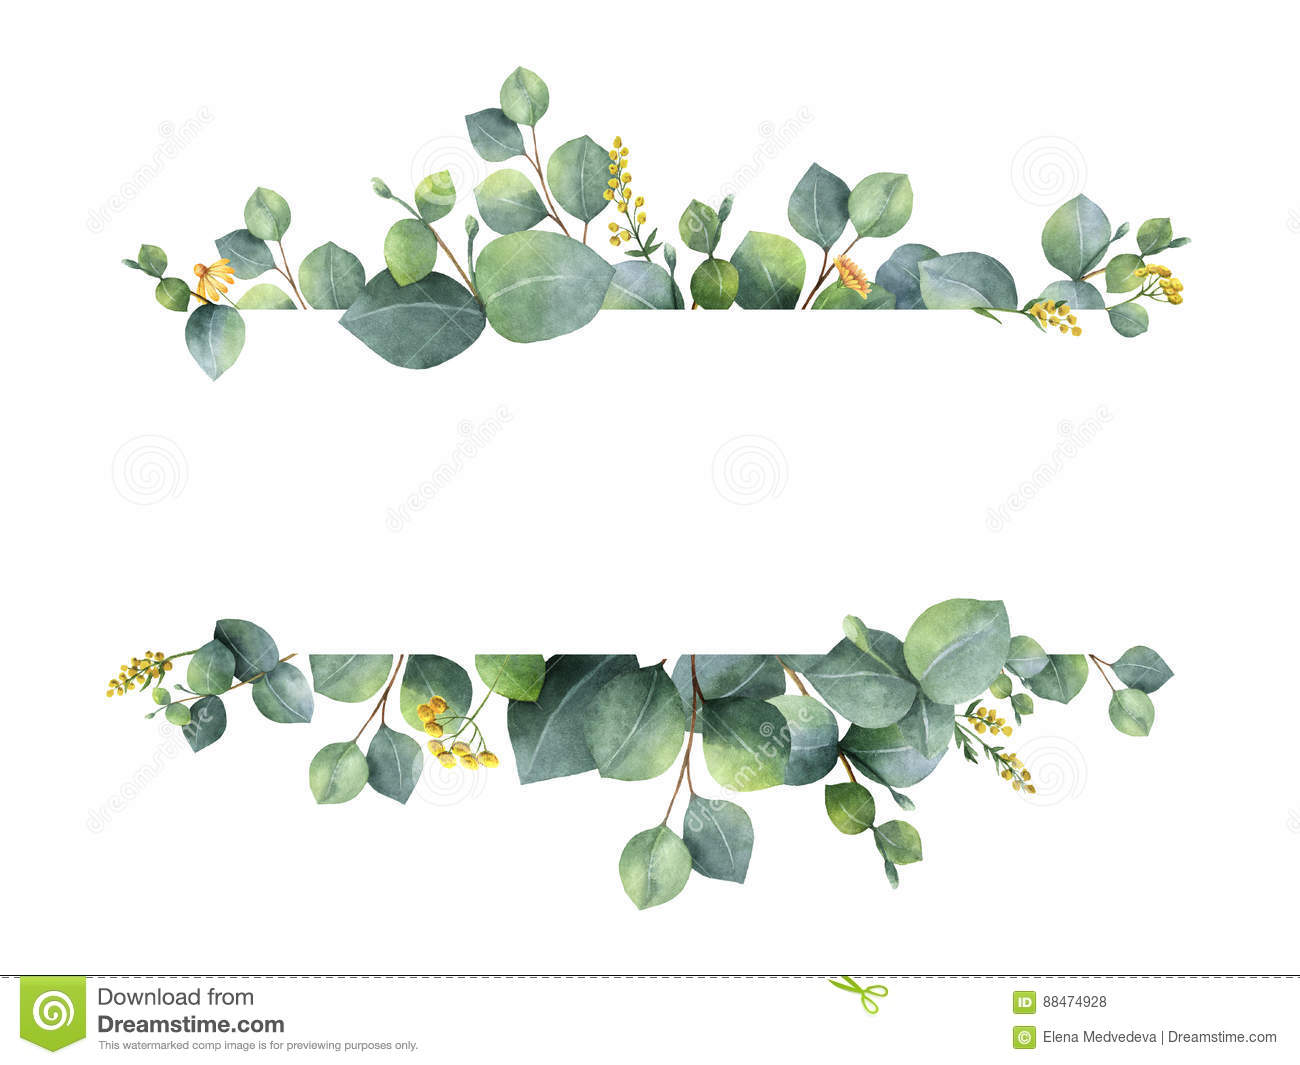 Watercolor green floral banner with silver dollar eucalyptus leaves and branches isolated on white background.